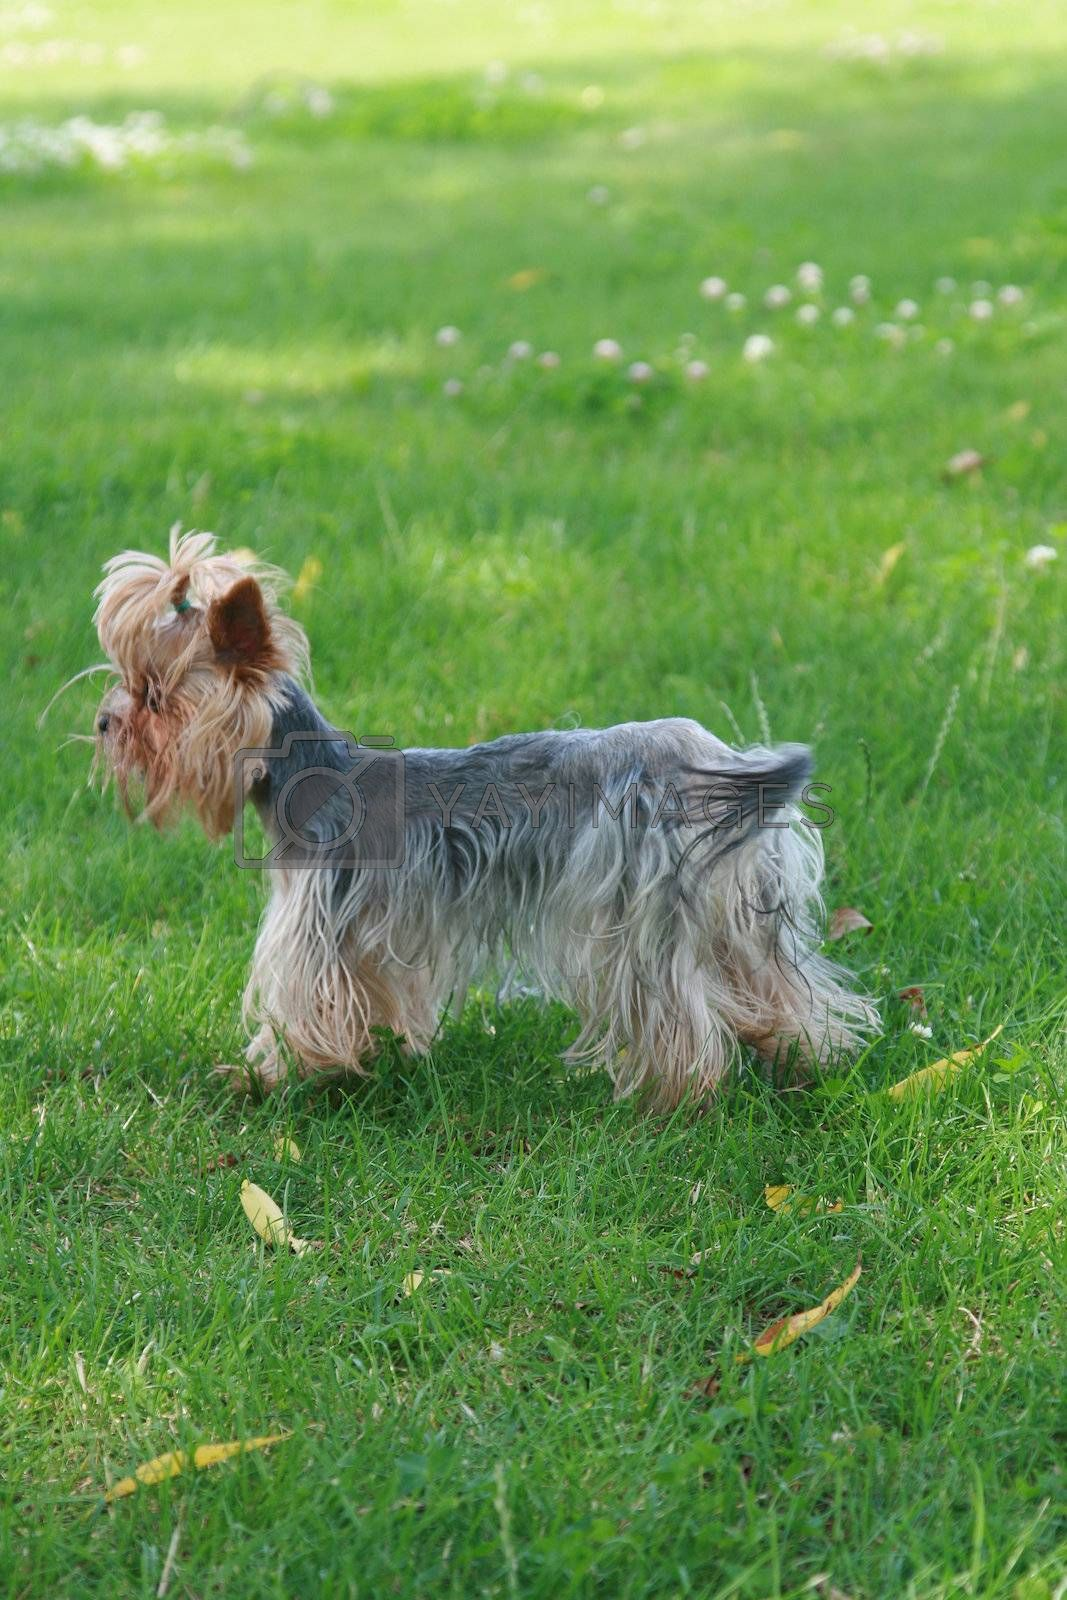 The small terrier costs on a green lawn